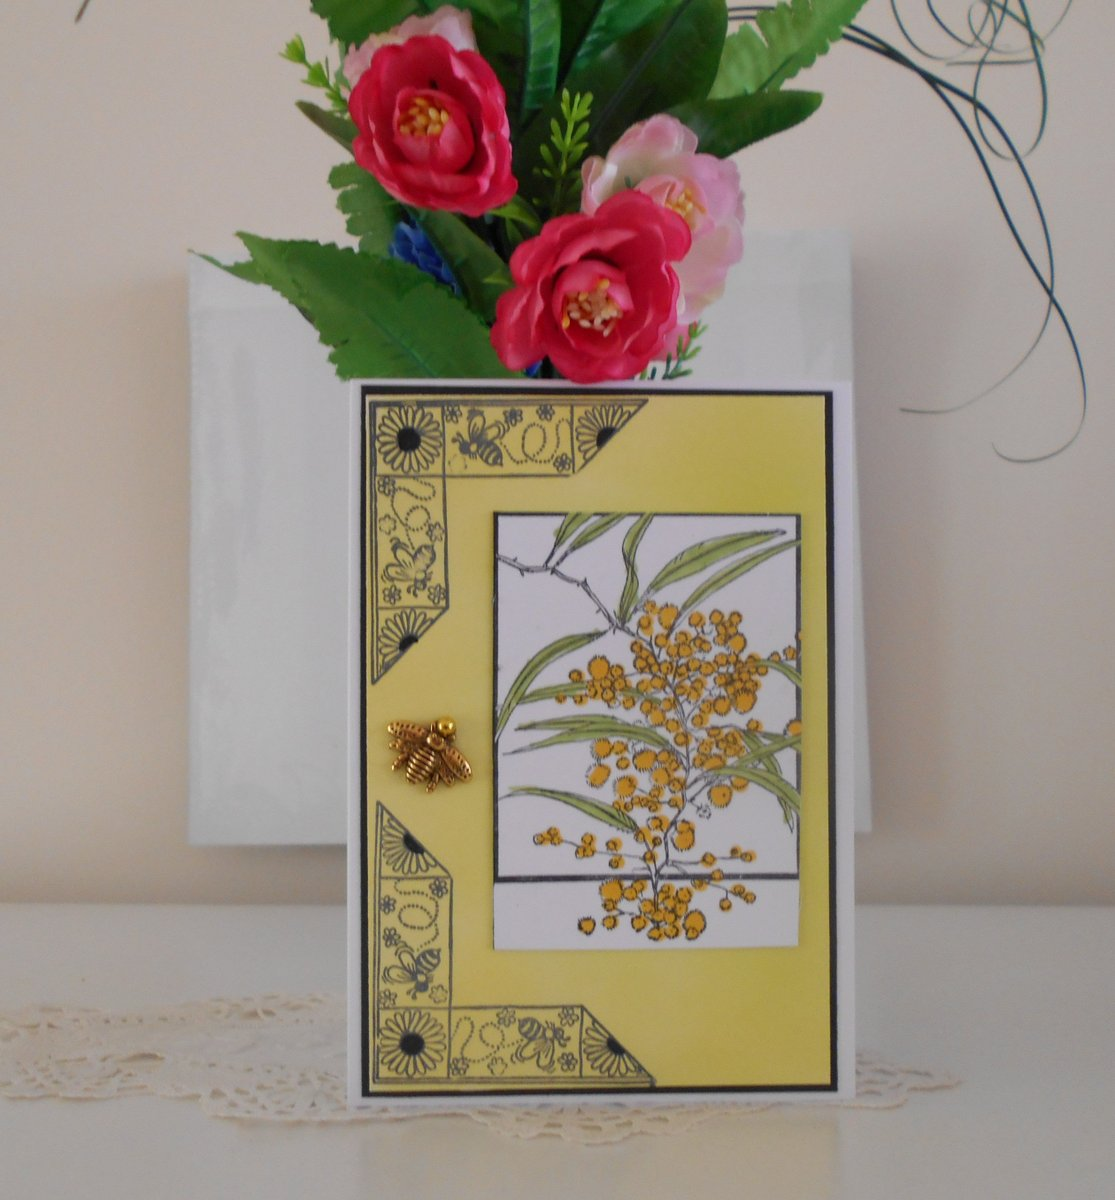 Handmade greeting card for any occasion, any gender with Australian Golden Wattle, sunflowers and bees with a bee charm https://t.co/ZAalTLInux #yellow #birthday #mothersday #black #handmadecard #uniquecard #blankcard #beecharm #aussiegoldenwattle https://t.co/4QCkhXCnx7